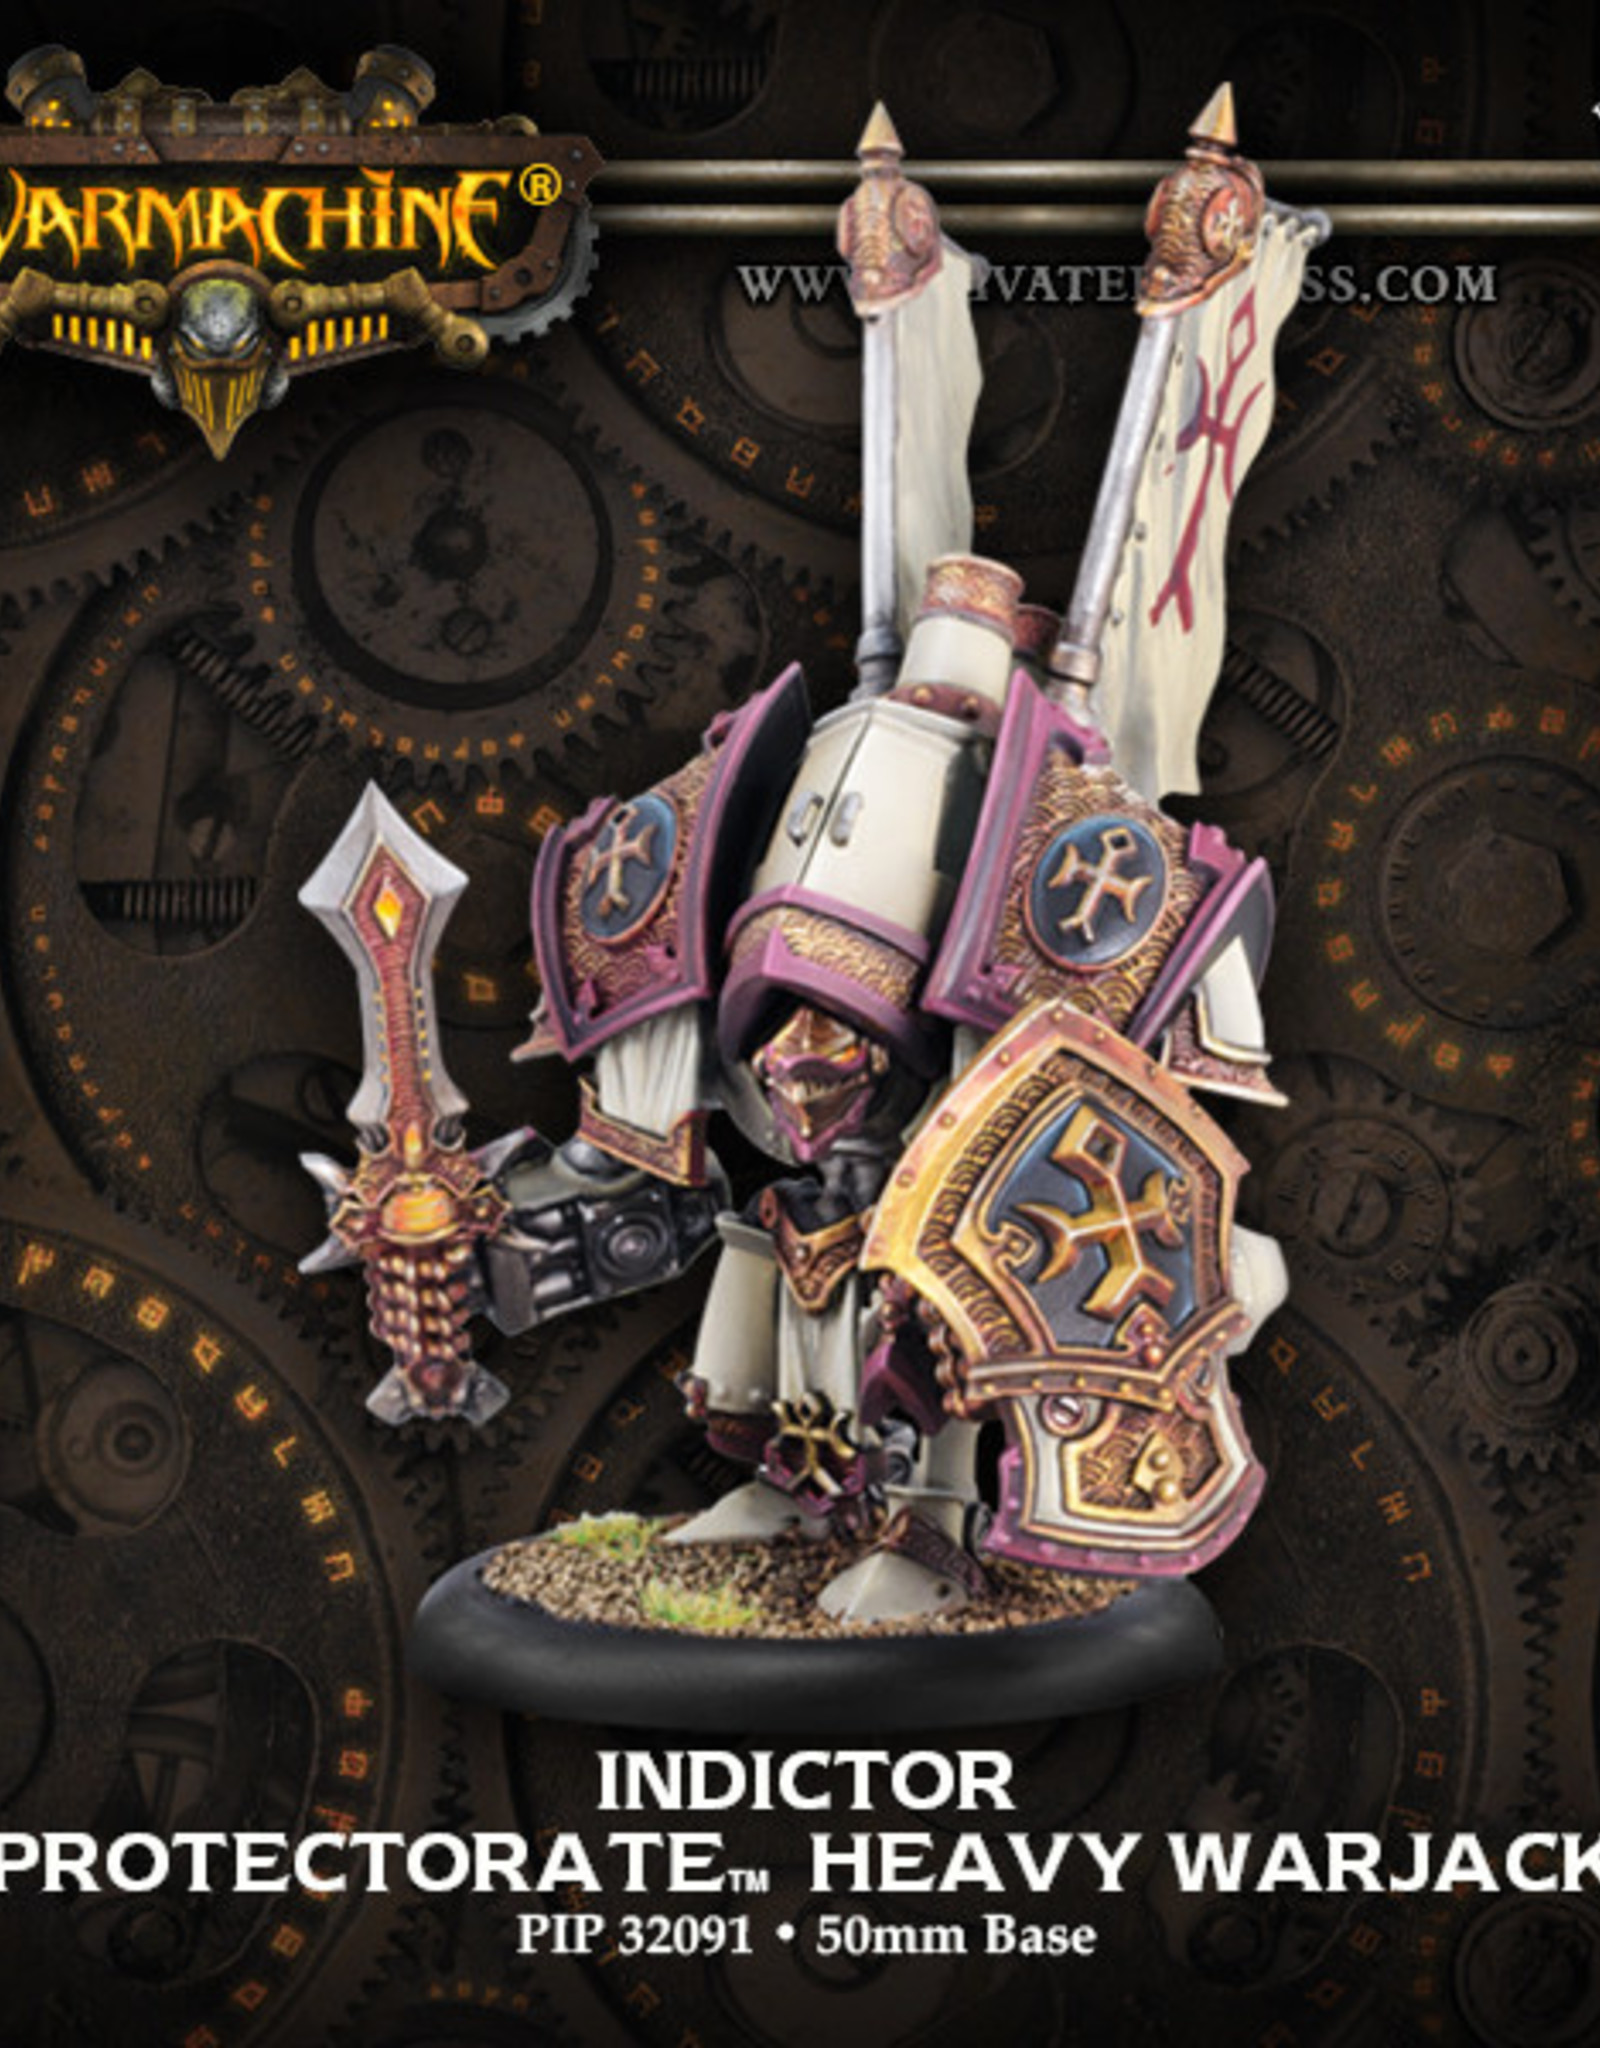 Warmachine Protectorate - Guardian/Indictor